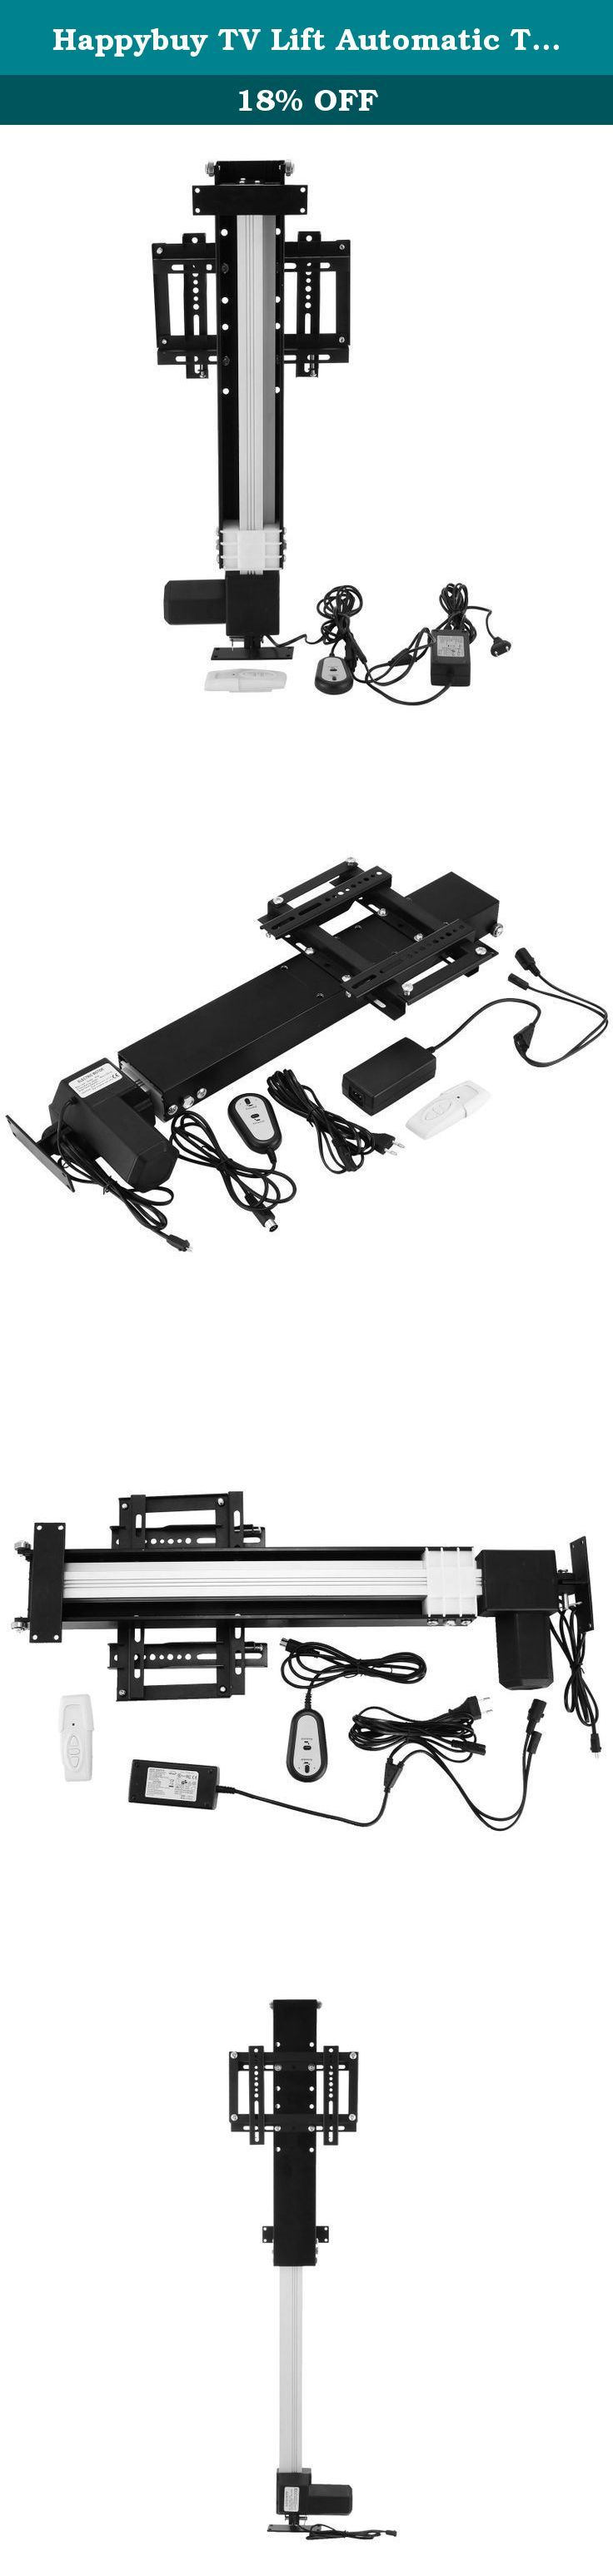 "Happybuy TV Lift Automatic TV Bracket Fit for 26'-32' TVs Bracket Stand 110V AC TV Bracket with Shelf for Home Use TV Bracket Wall Mount with Remote Controller (28' ). Automatical TV Lift Bracket with Remote Controller 14"" - 37"" The lift features a unique mounting mechanism which fastens your flat screen TV to the bracket for guaranteed safety and security. These lifts can also be mounted to your ceiling or wall and drop your flat screen downward. The lift operates by using a single…"